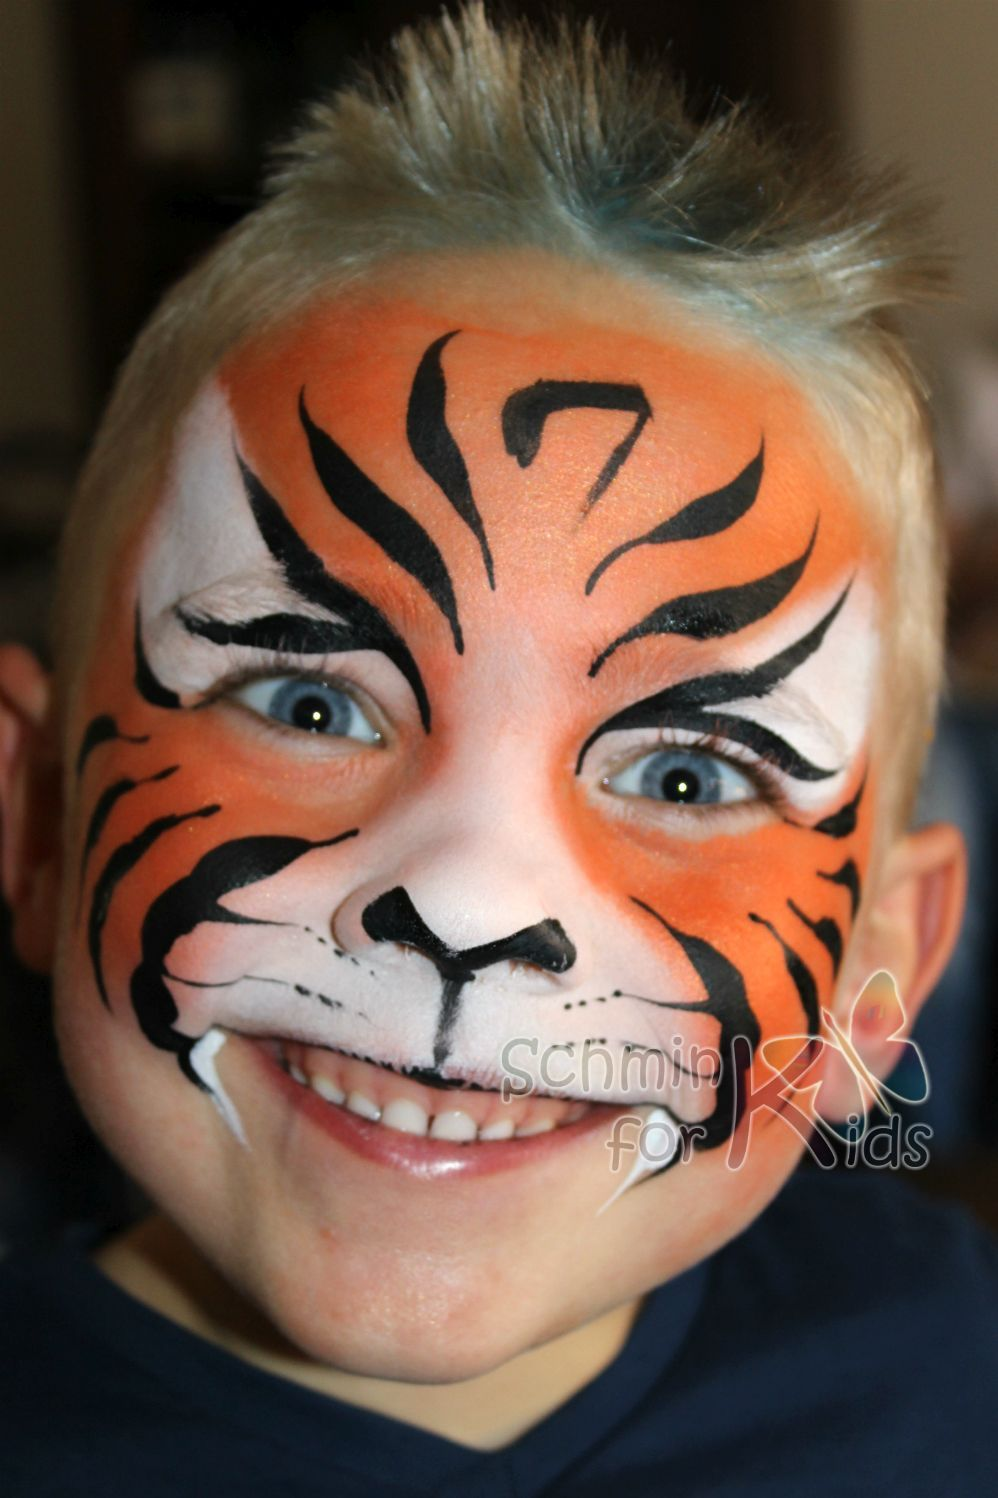 tiger schmink for kids facepaint schminken tijger. Black Bedroom Furniture Sets. Home Design Ideas